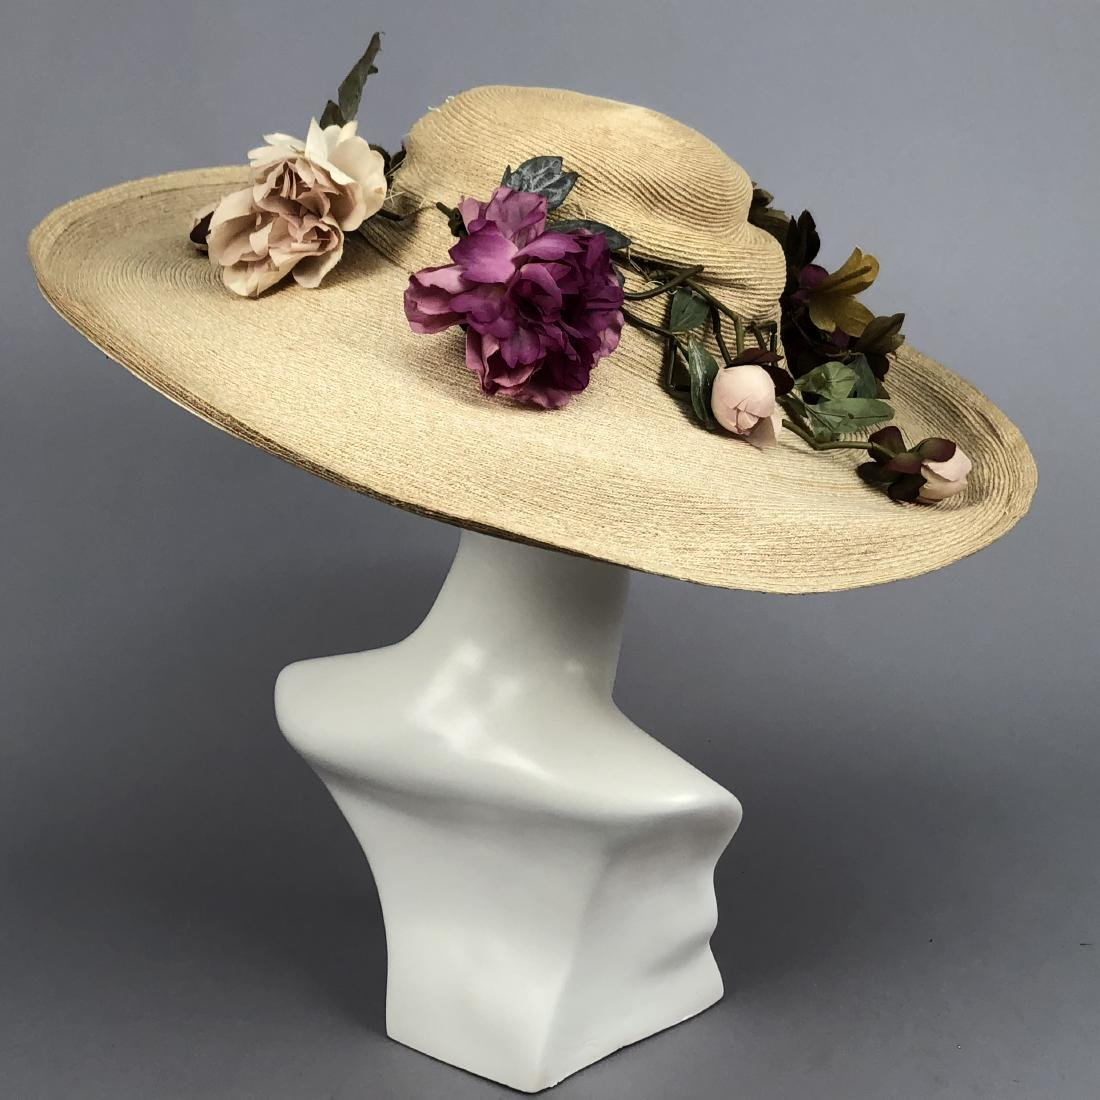 WIDE-BRIM STRAW HAT with PEONIES, QUEENS AUCTION, c. - 4